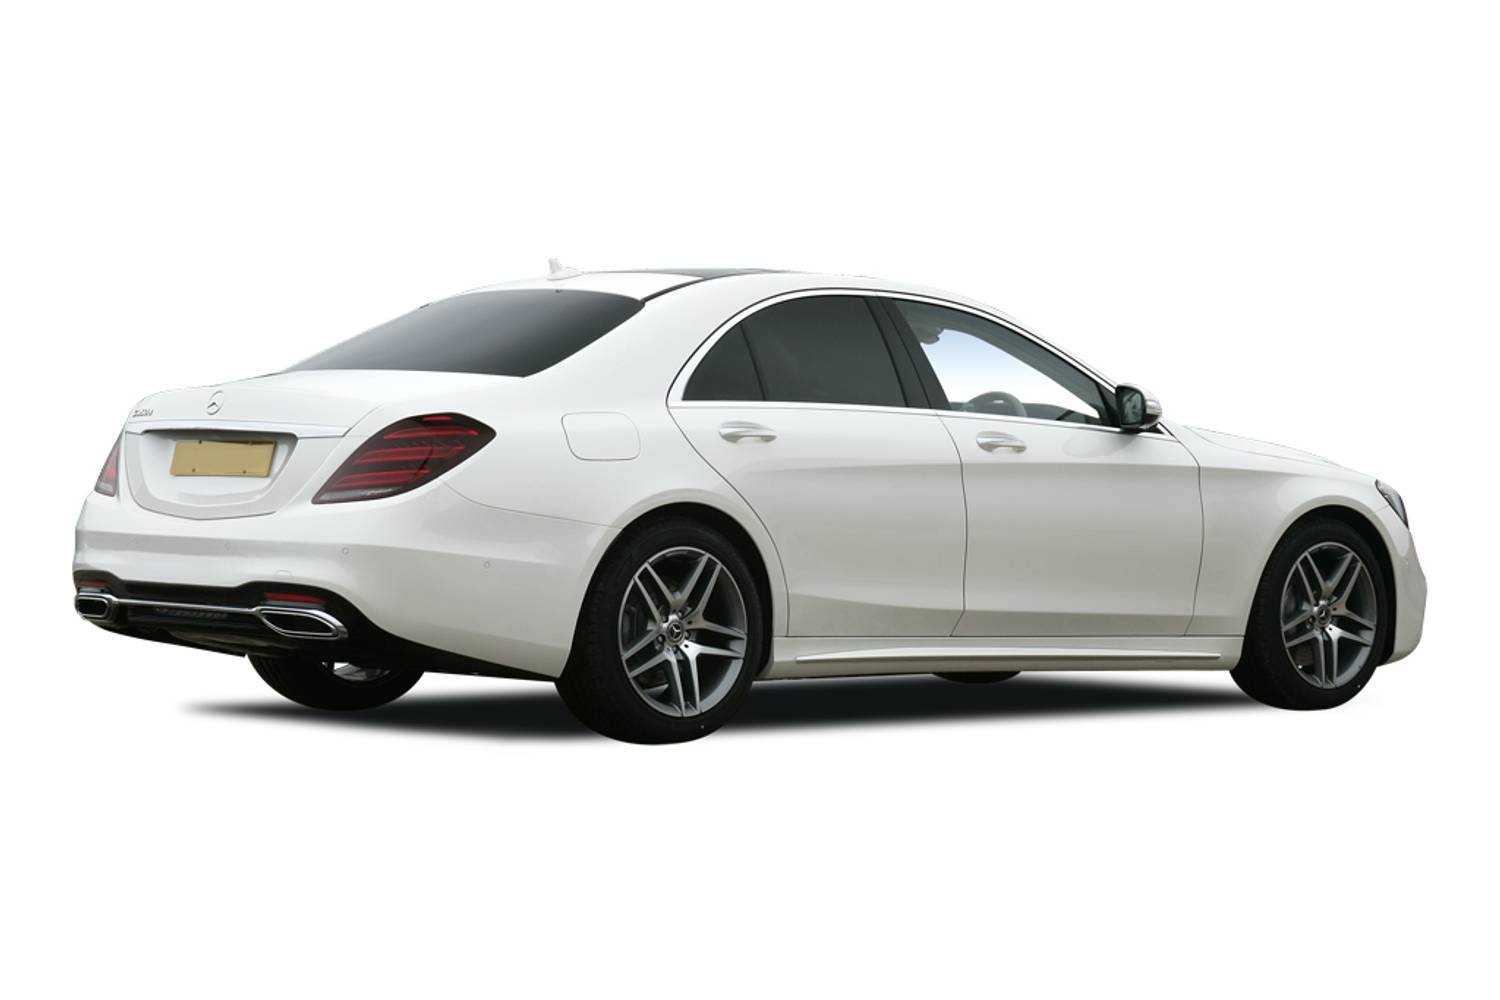 Mercedes-Benz S Class Saloon Rear 4dr Rear Three Quarter